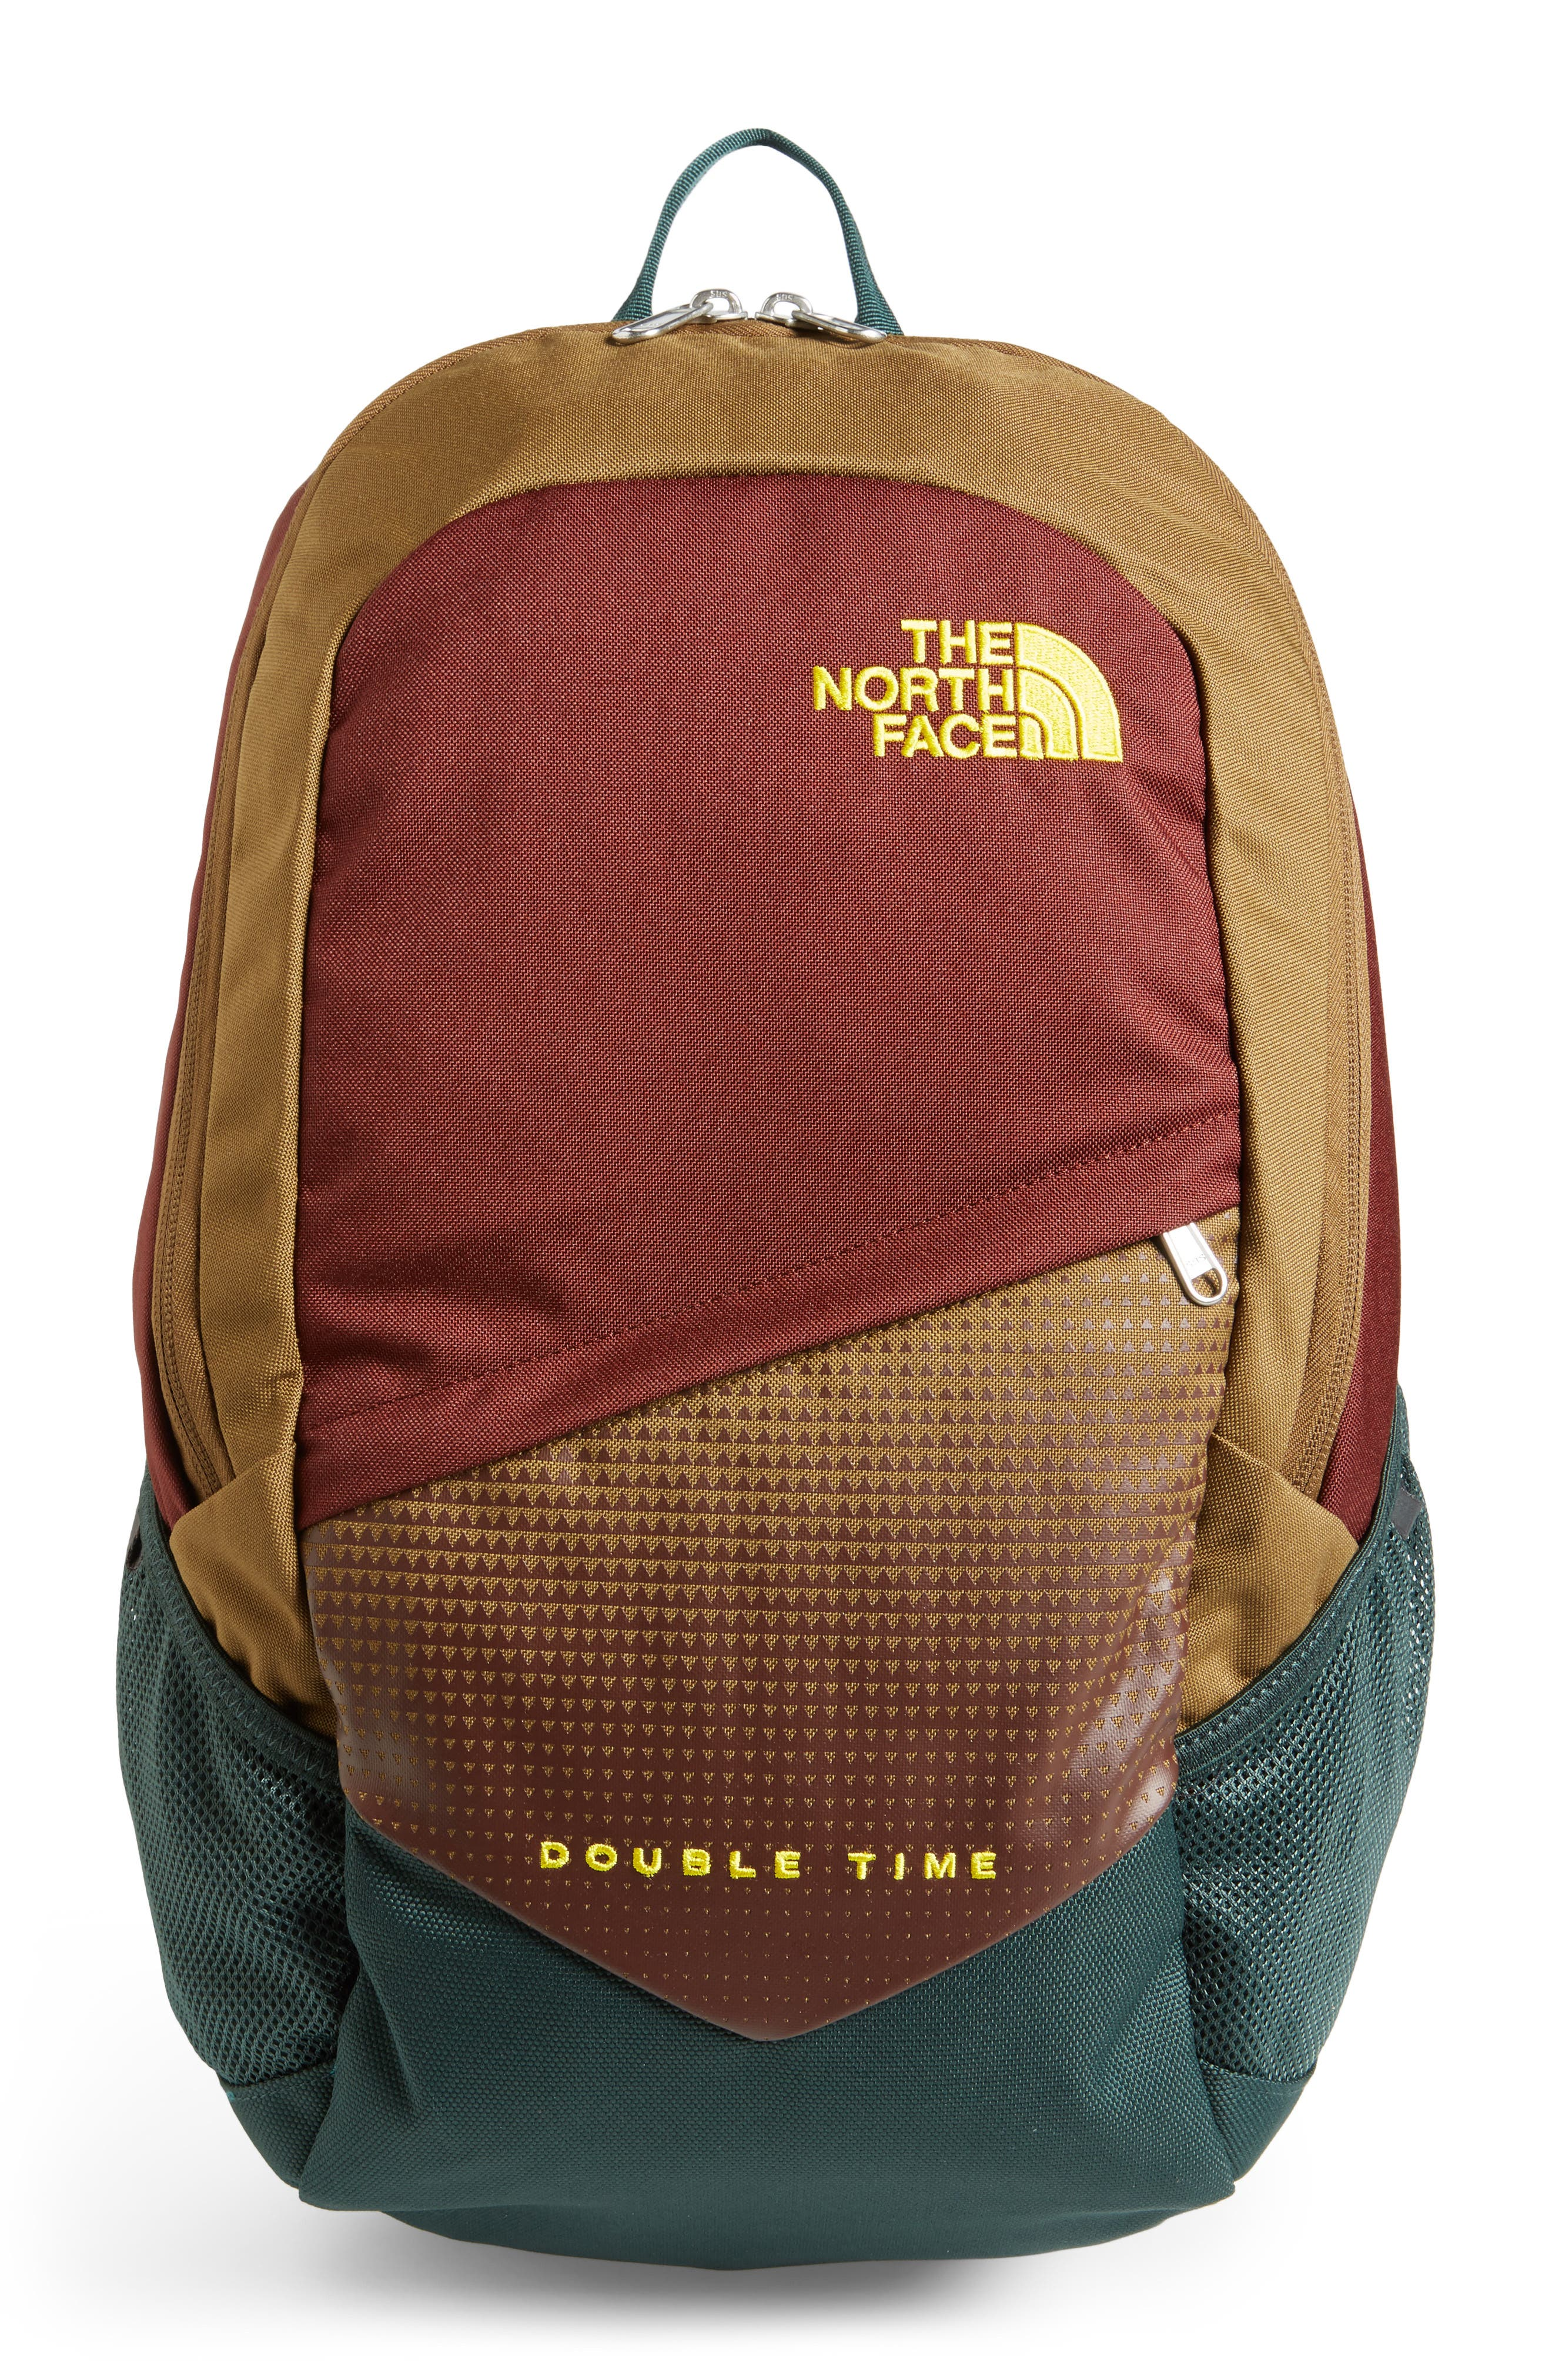 Alternate Image 1 Selected - The North Face Double Time Backpack (Kids)